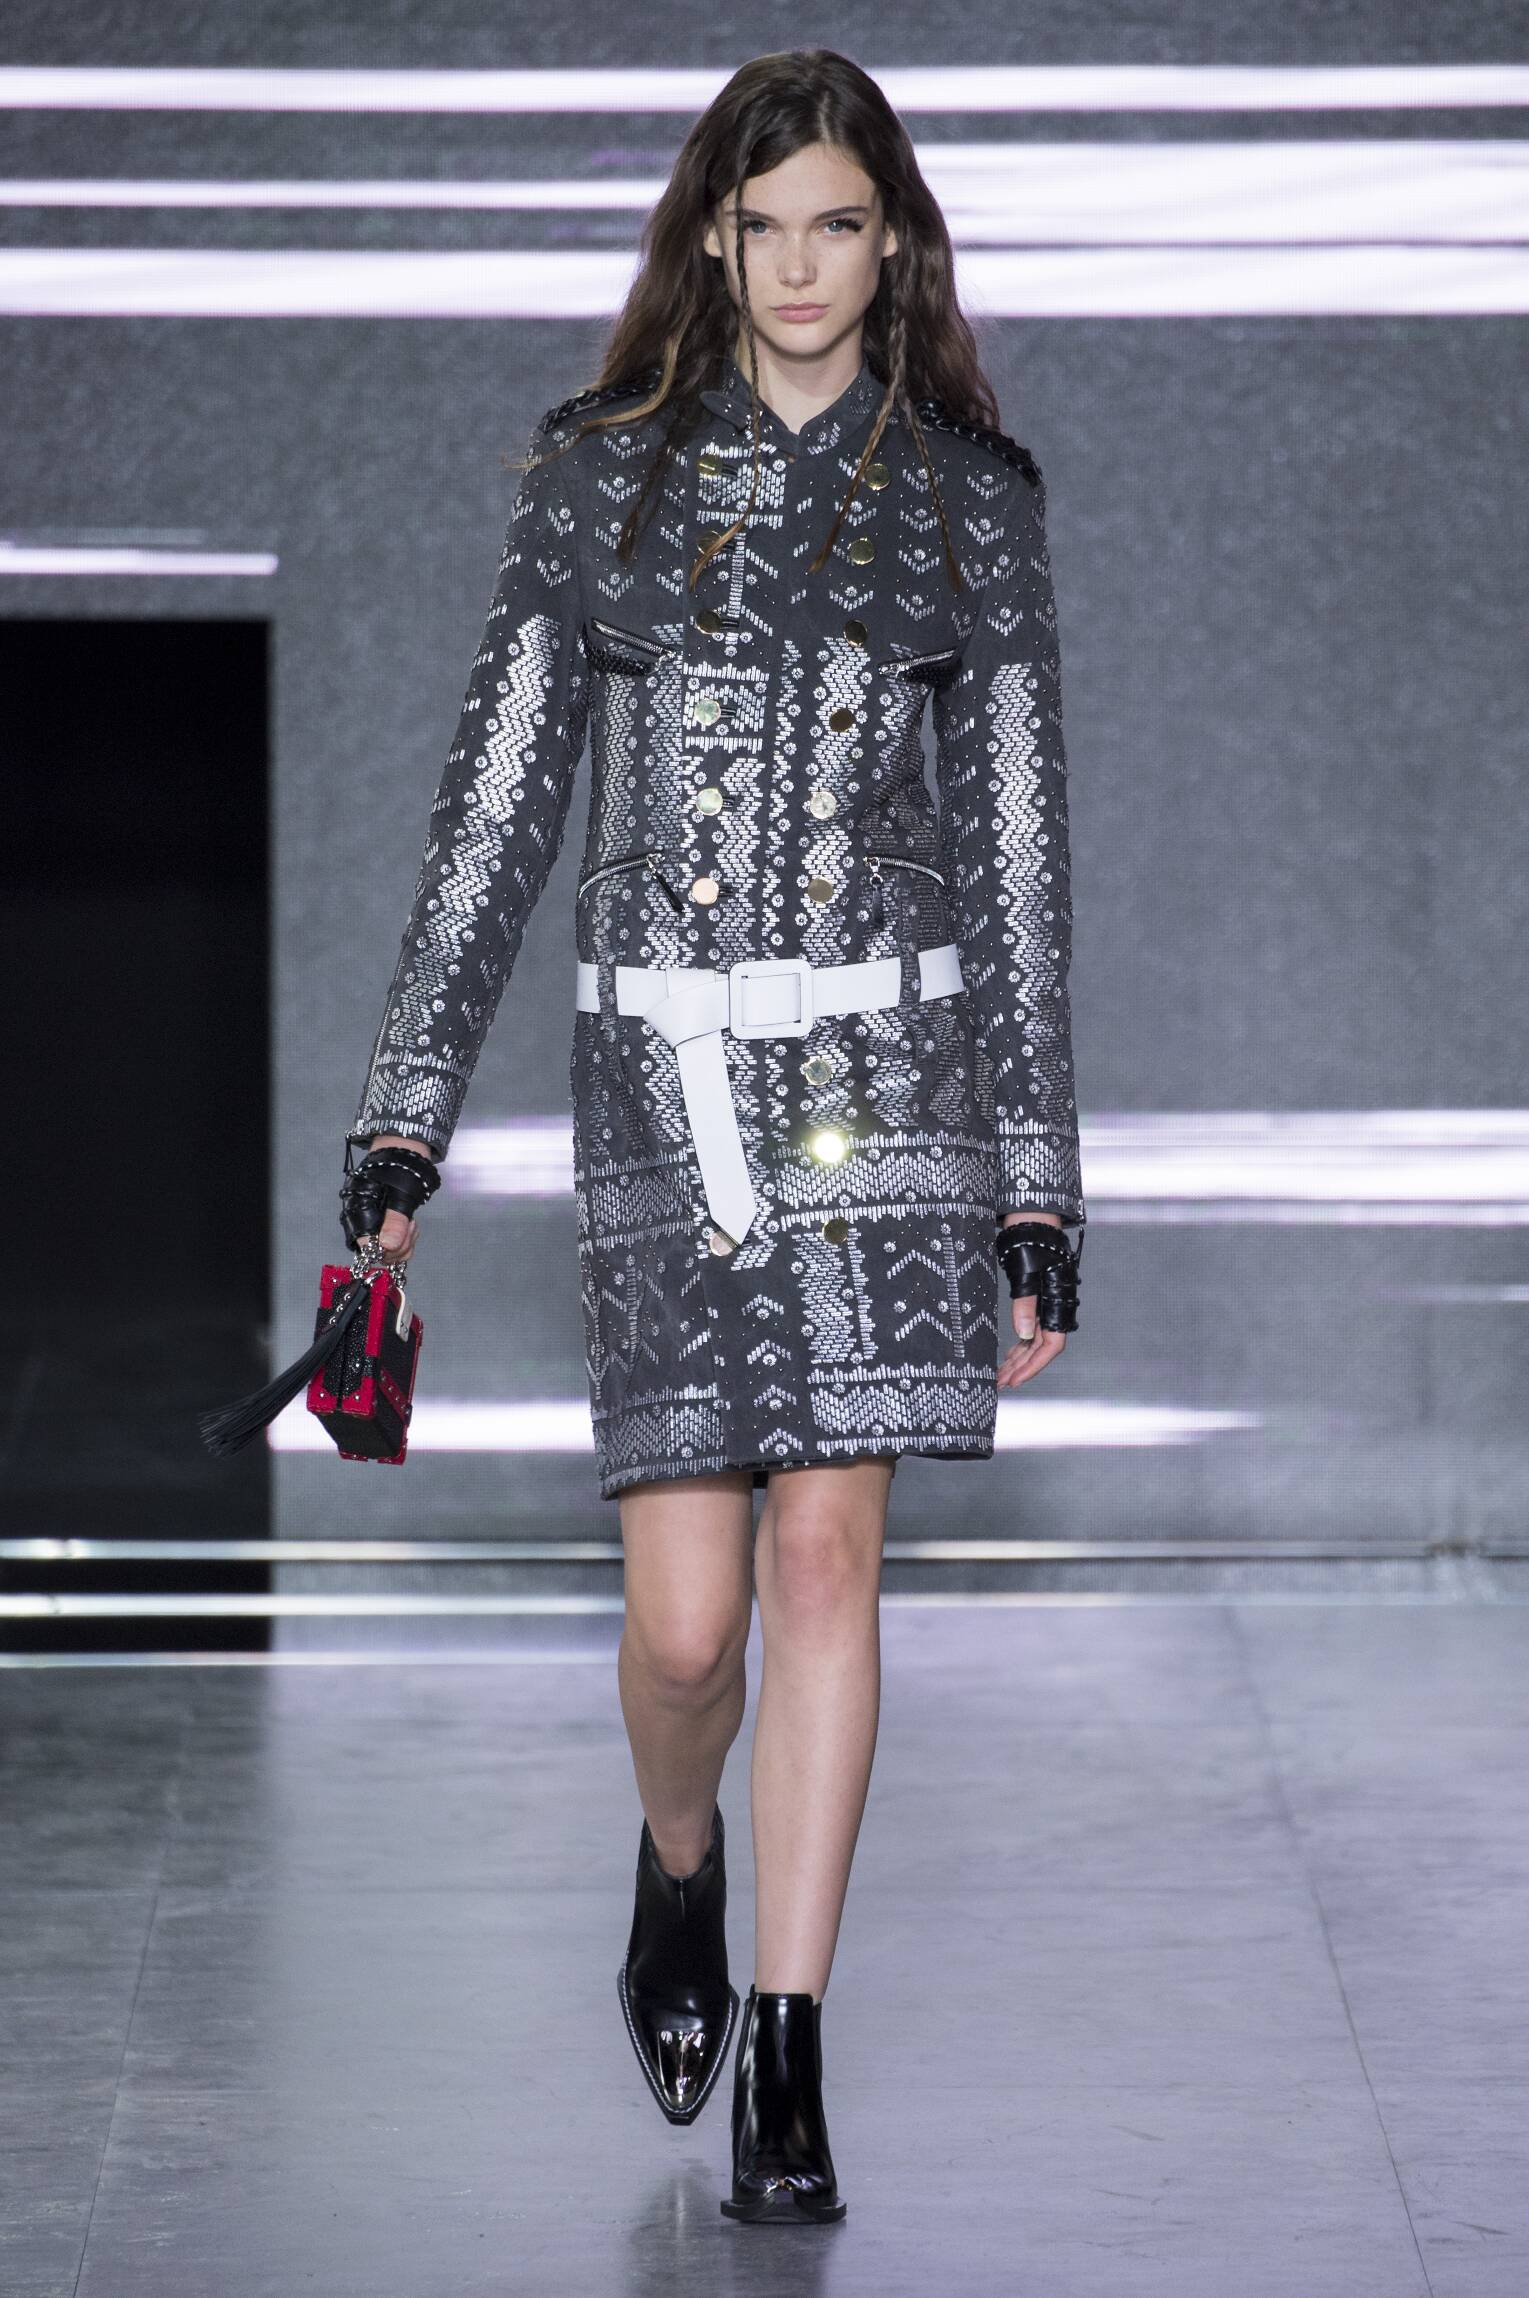 Louis Vuitton Women's Collection 2016